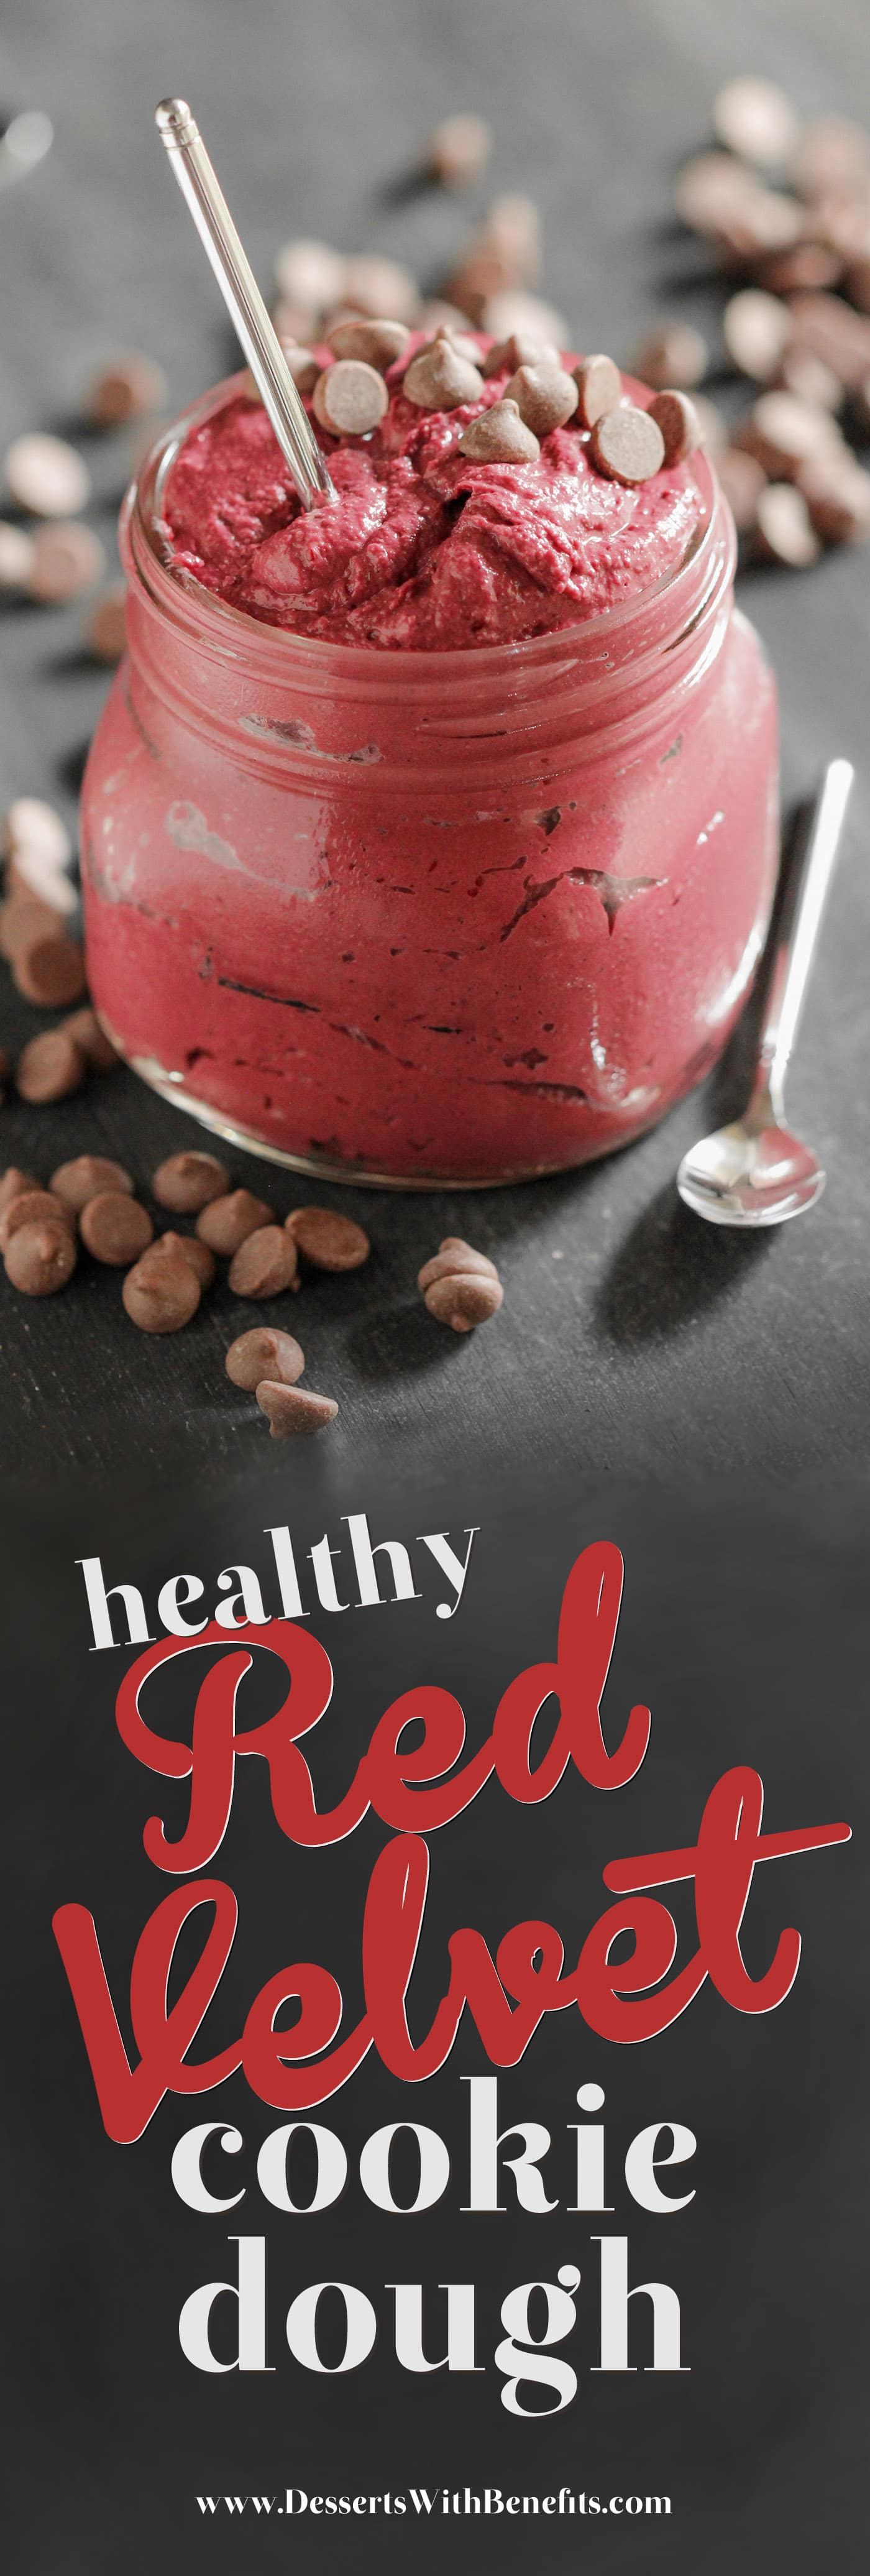 This Healthy Red Velvet Cookie Dough Dip is sweet, chocolatey, thick, fudgy, rich, and addictive. One spoonful and you'd never believe it's actually good for you. It's eggless (so it's safe to eat raw!), sugar free, high protein, whole grain, gluten free, dairy free, and vegan too! Healthy Dessert Recipes with low calorie, low fat, and low carb options at the Desserts With Benefits Blog (www.DessertsWithBenefits.com)